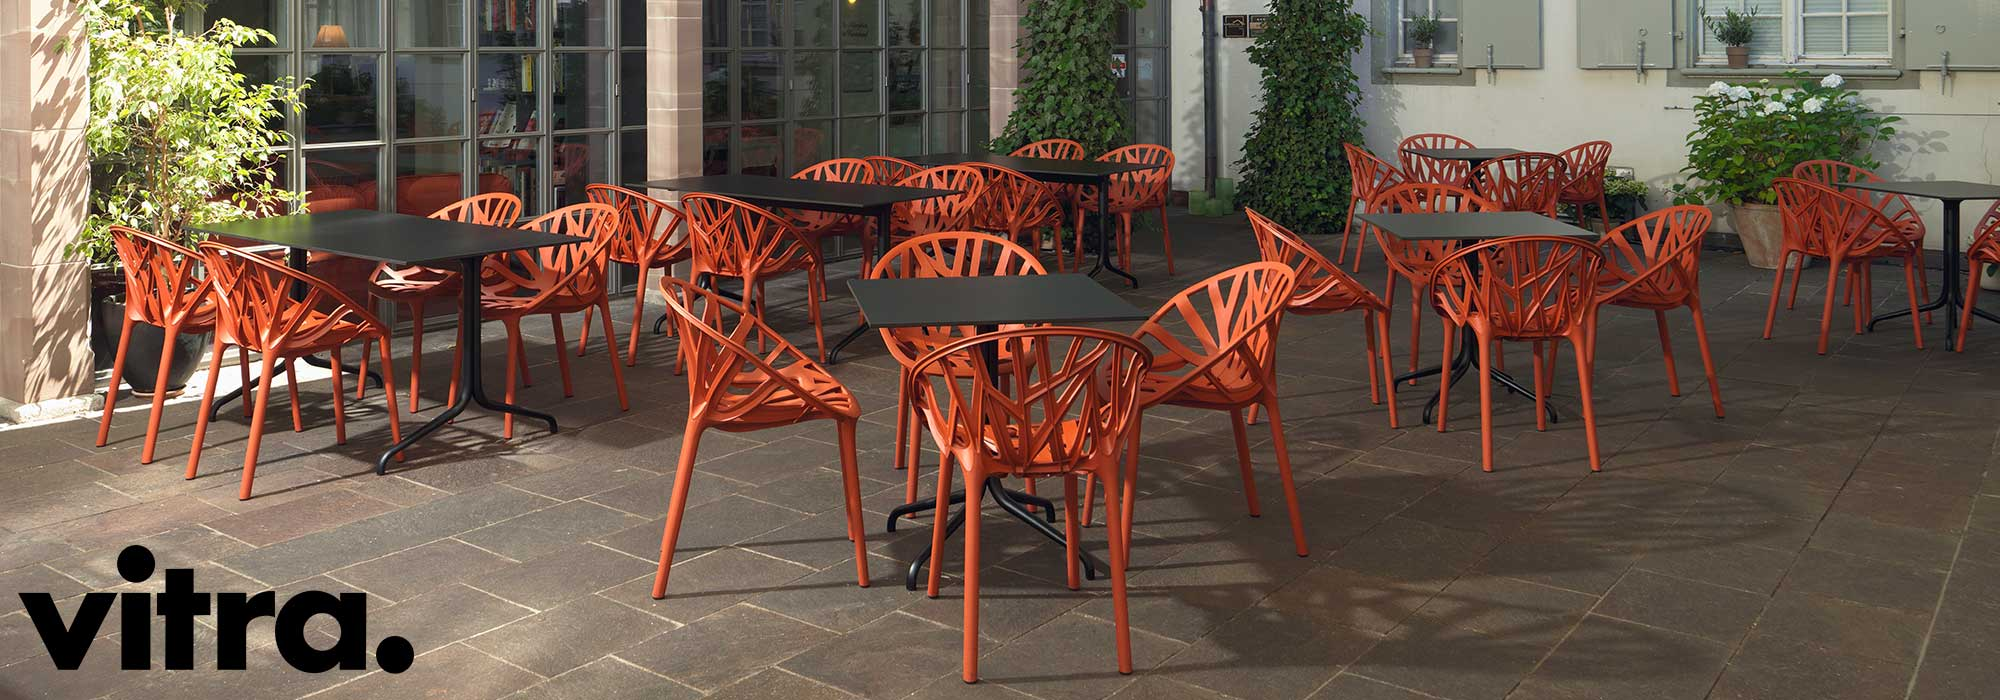 Vitra Vegetal Chairs Outdoor Cafe Environment